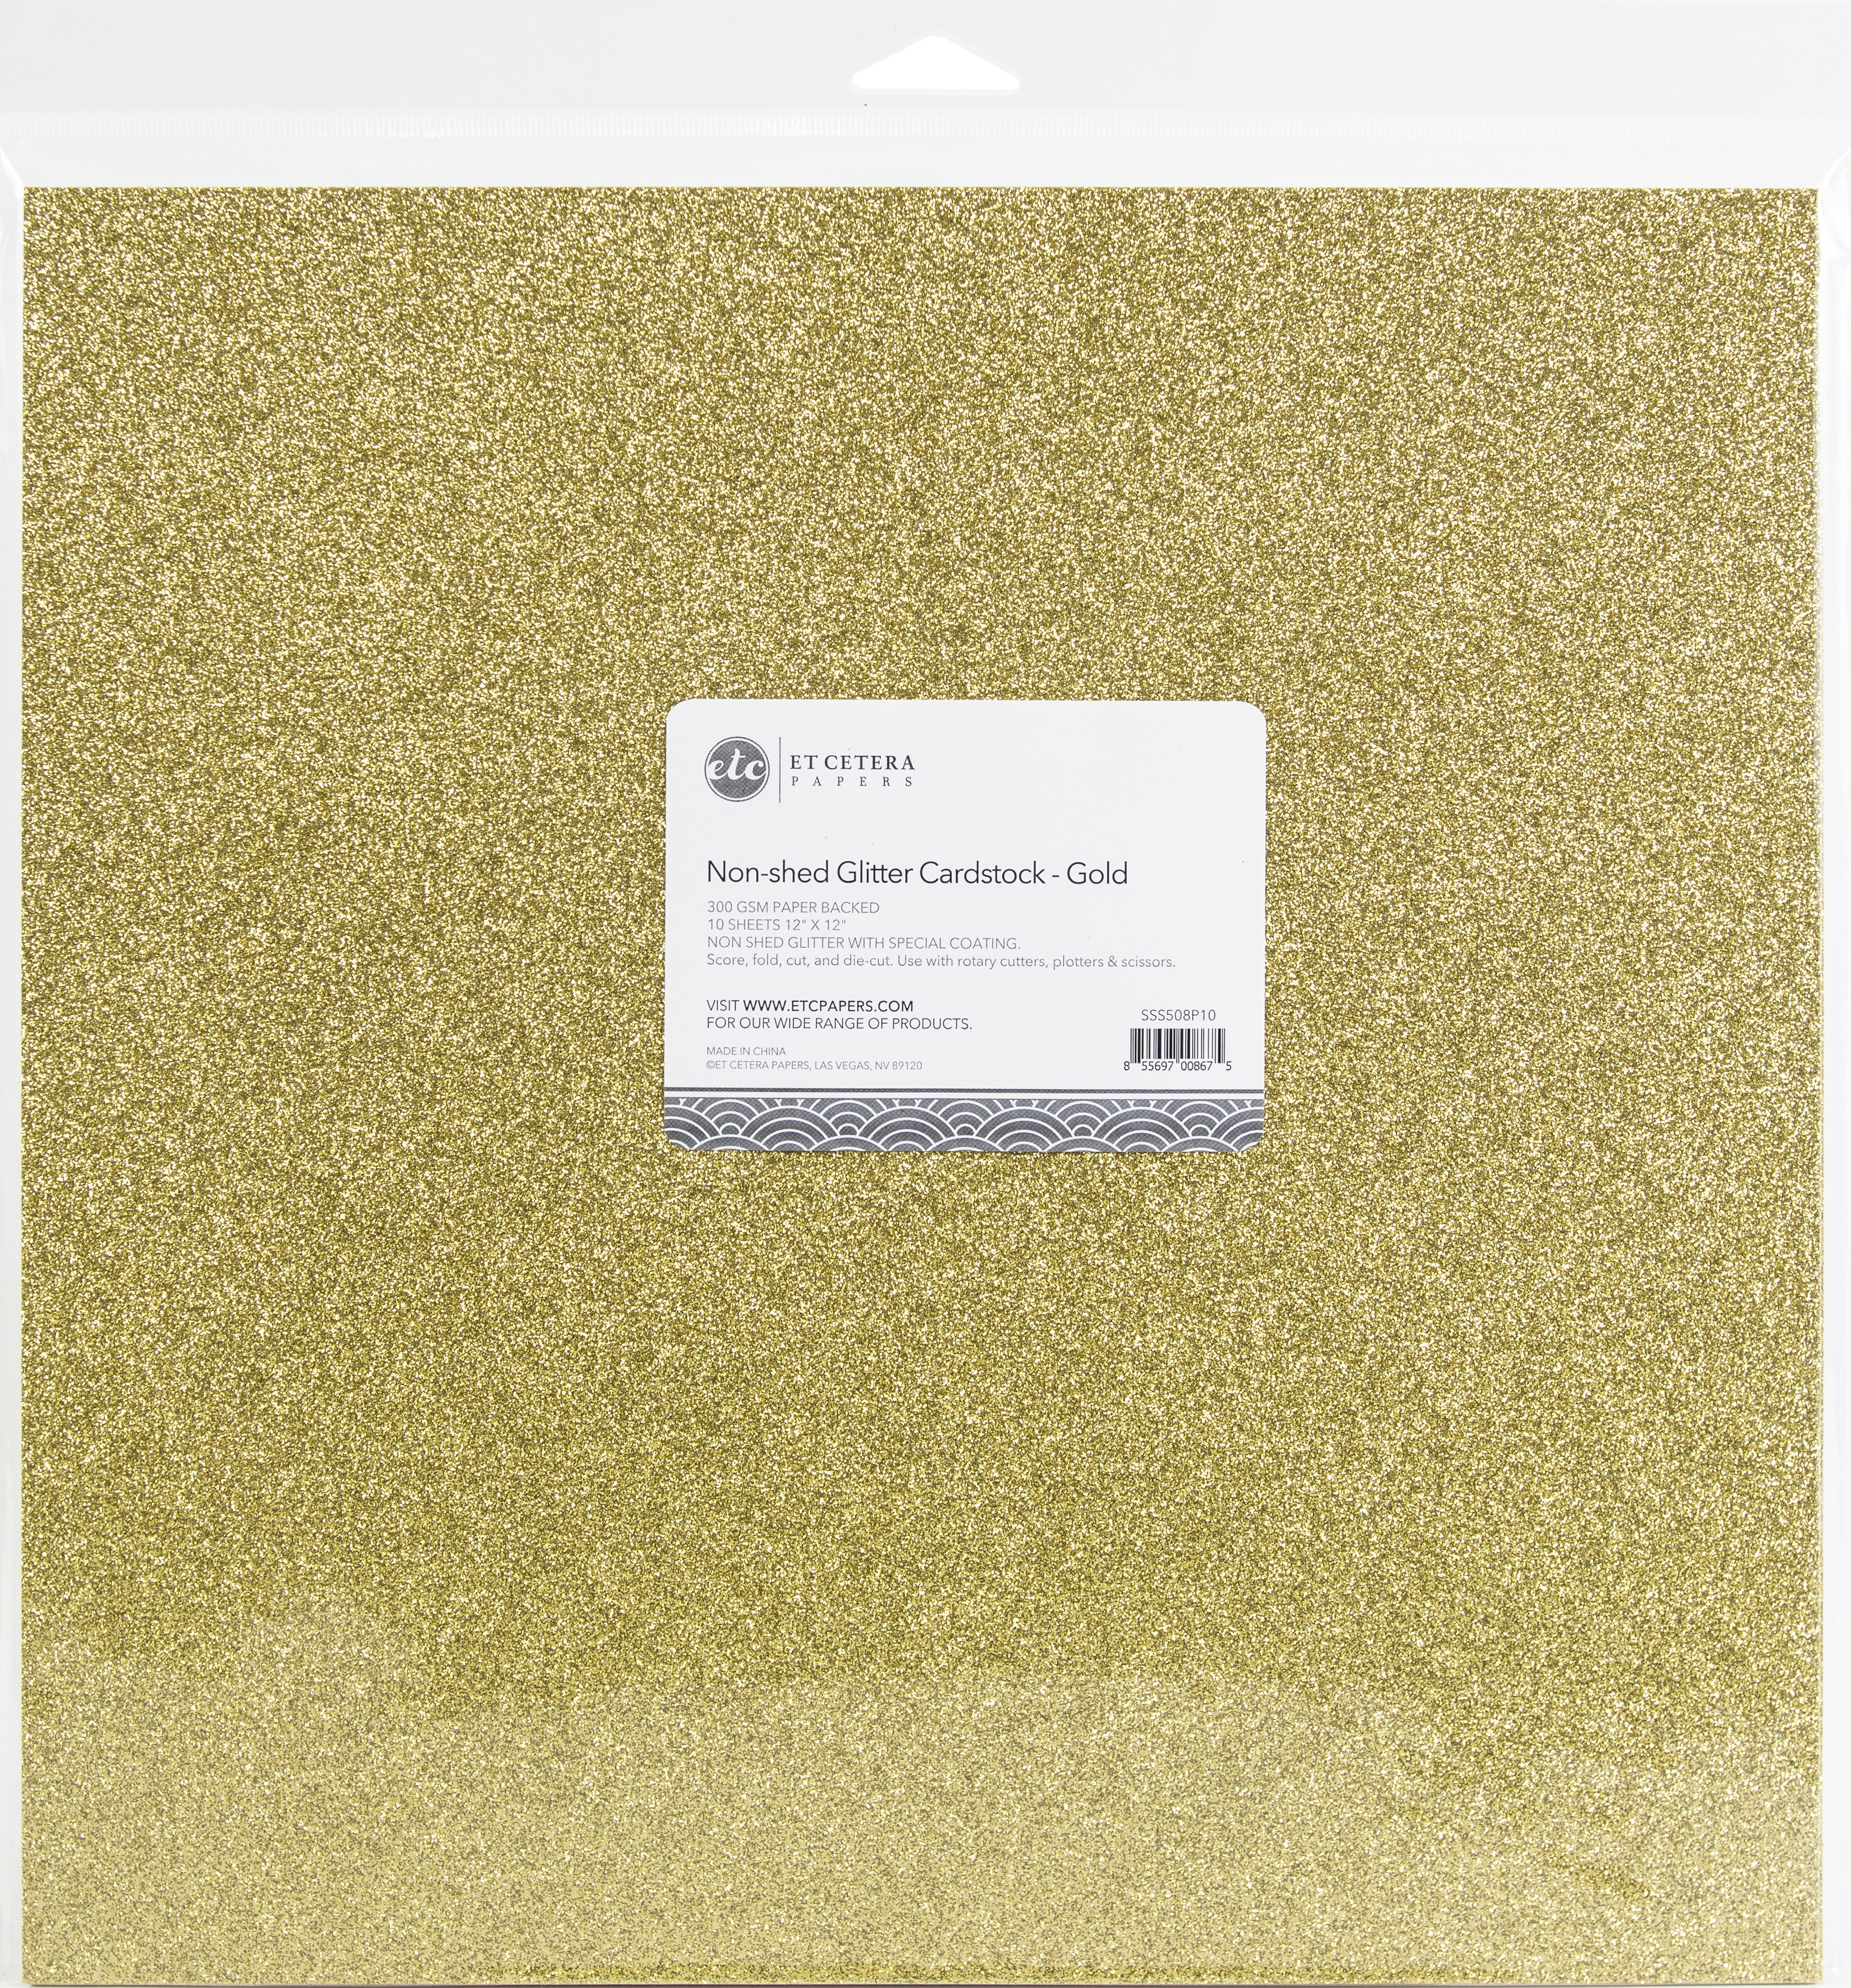 Non-Shed Glitter Cardstock - Gold, 12x12